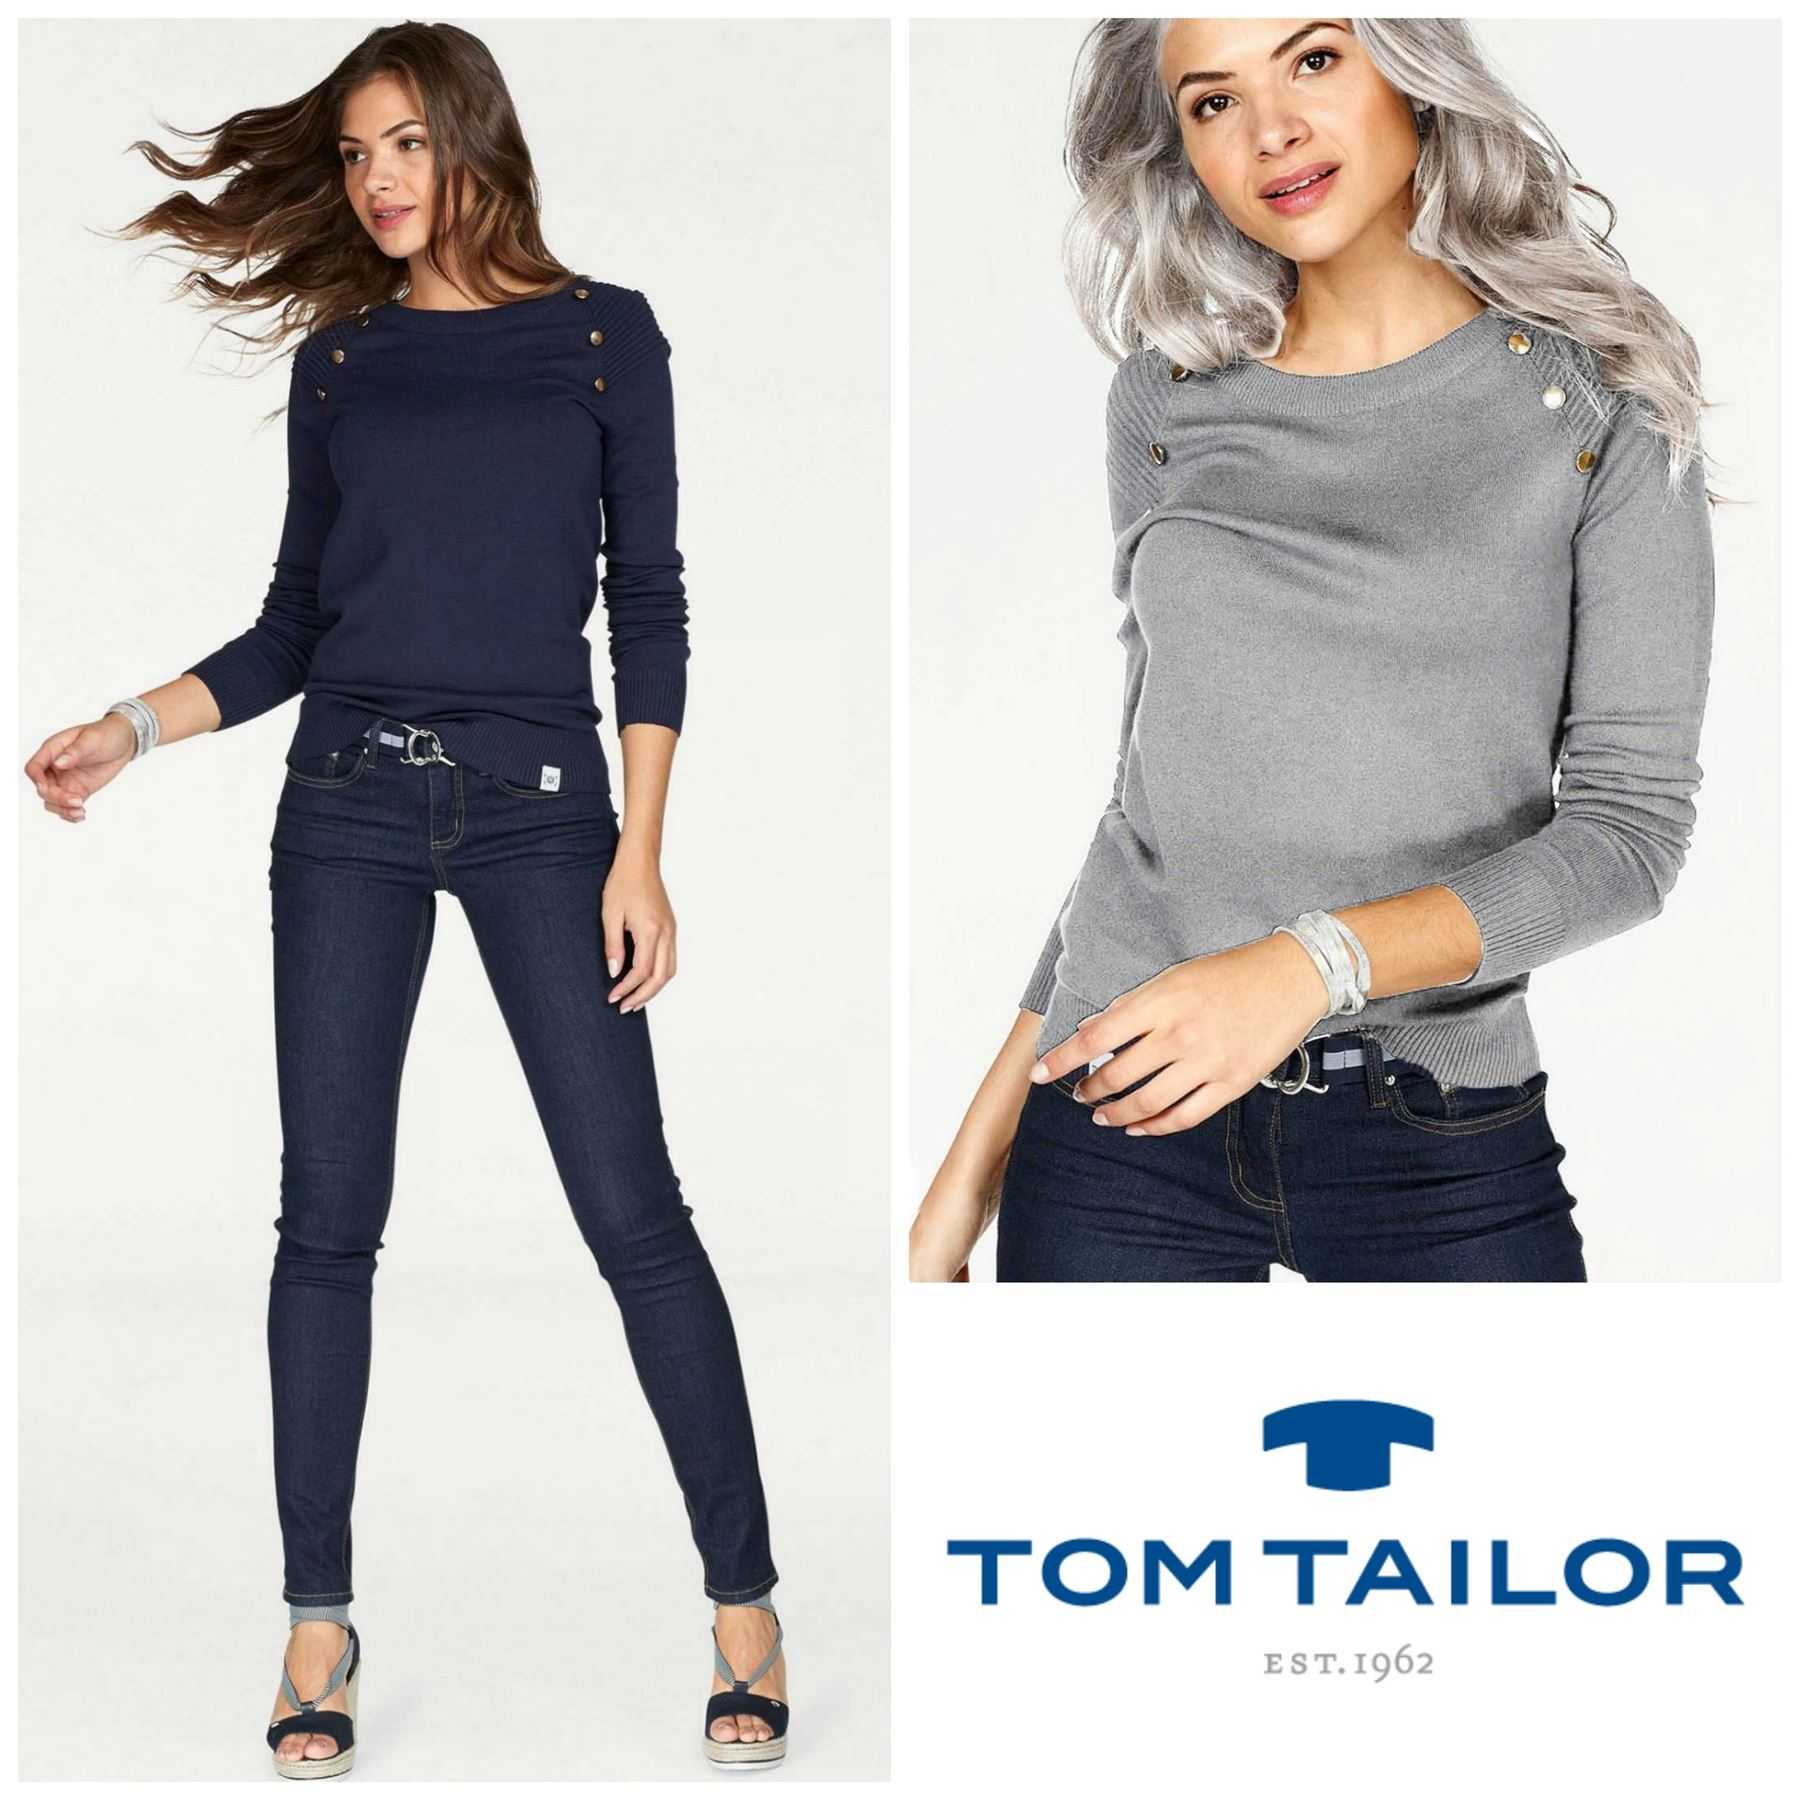 Sweater 3022881 09 10 Tom Tailor Mens Knitwear Denim Dream E Pood Rom Tailor